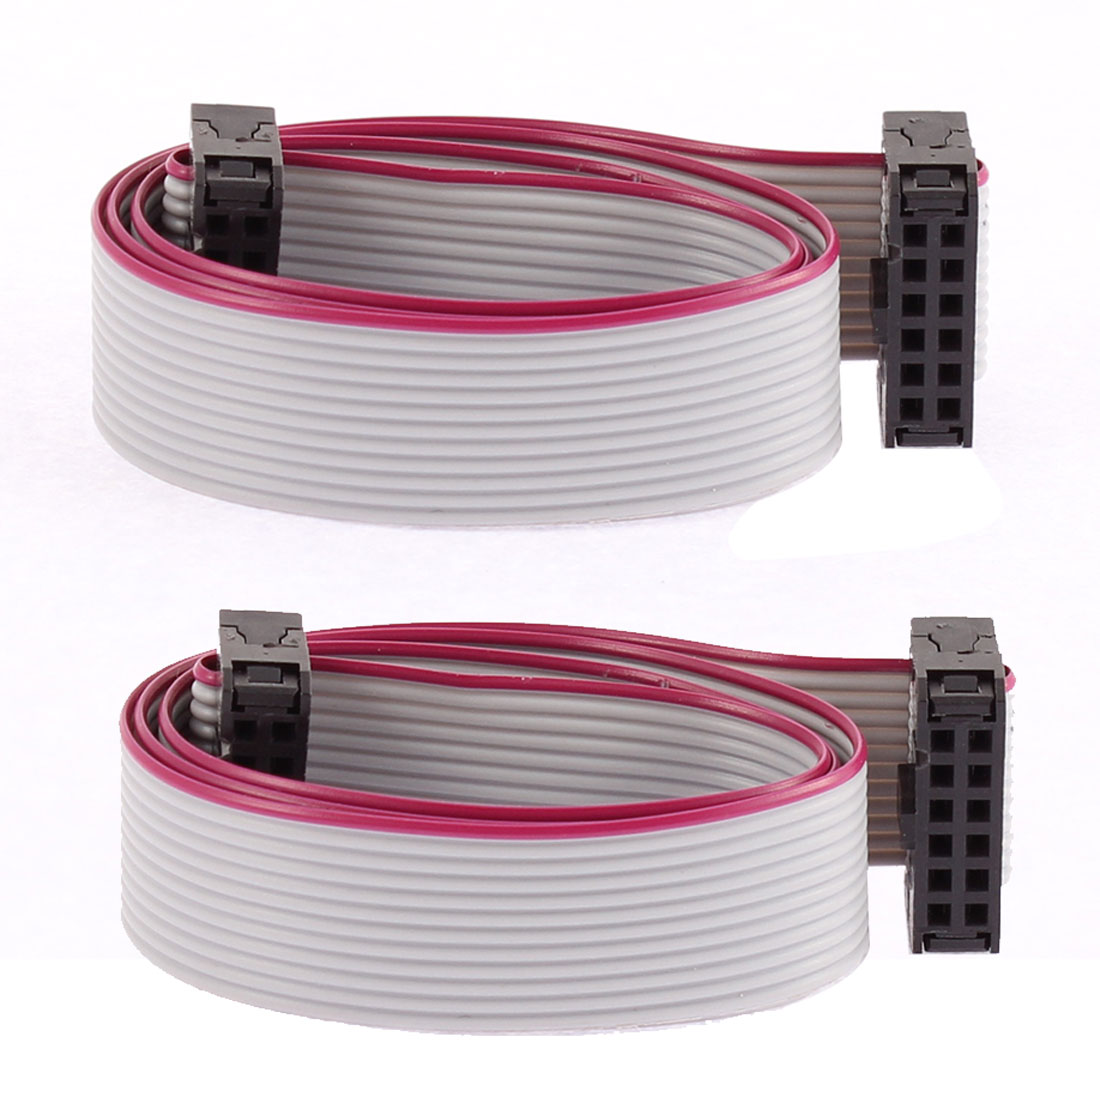 2.54mm Pitch 12 Pins 12 Wires F/F IDC Connector Flat Ribbon Cable 40cm 2 Pcs